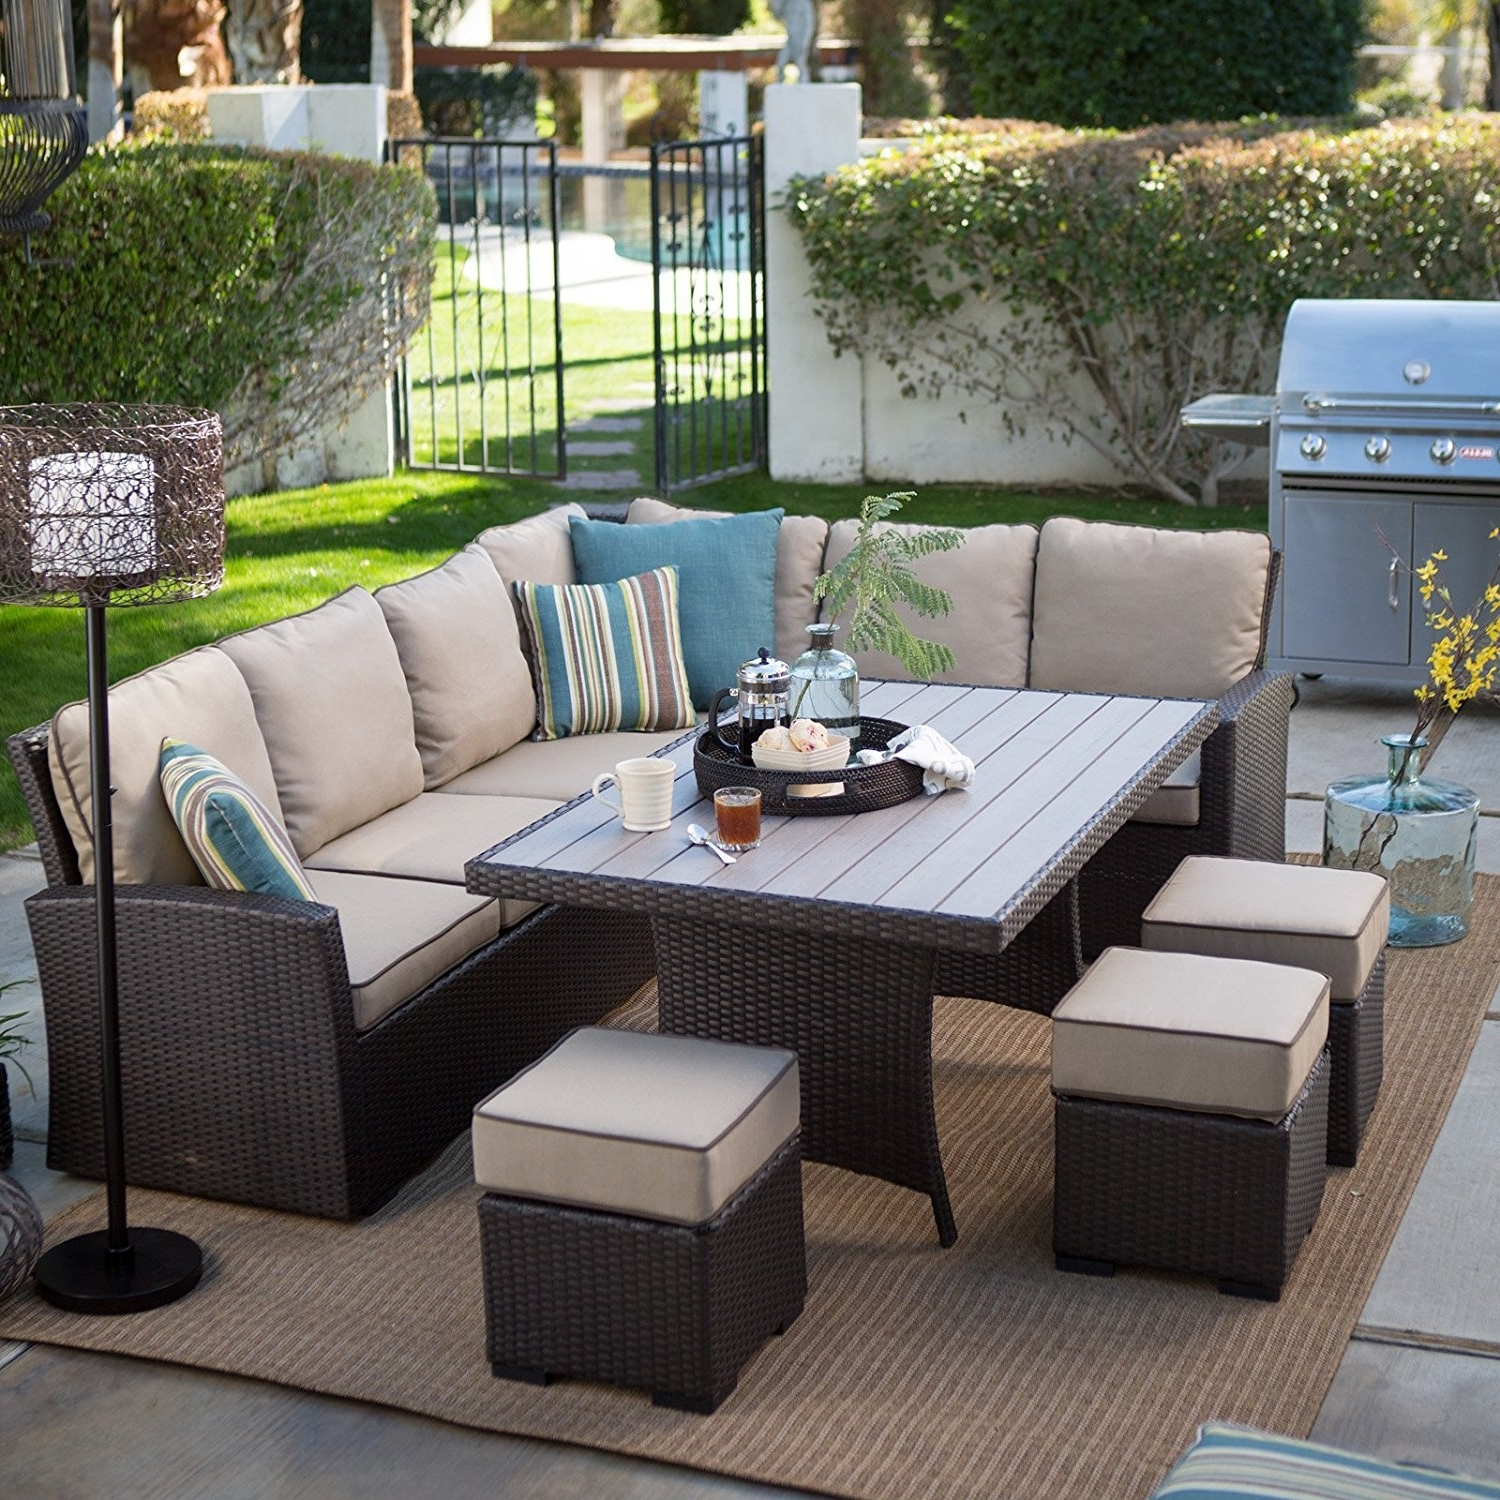 Small Conversation Area Ideas Patio Furniture Walmart Patio Throughout Newest Patio Conversation Sets For Small Spaces (View 15 of 20)